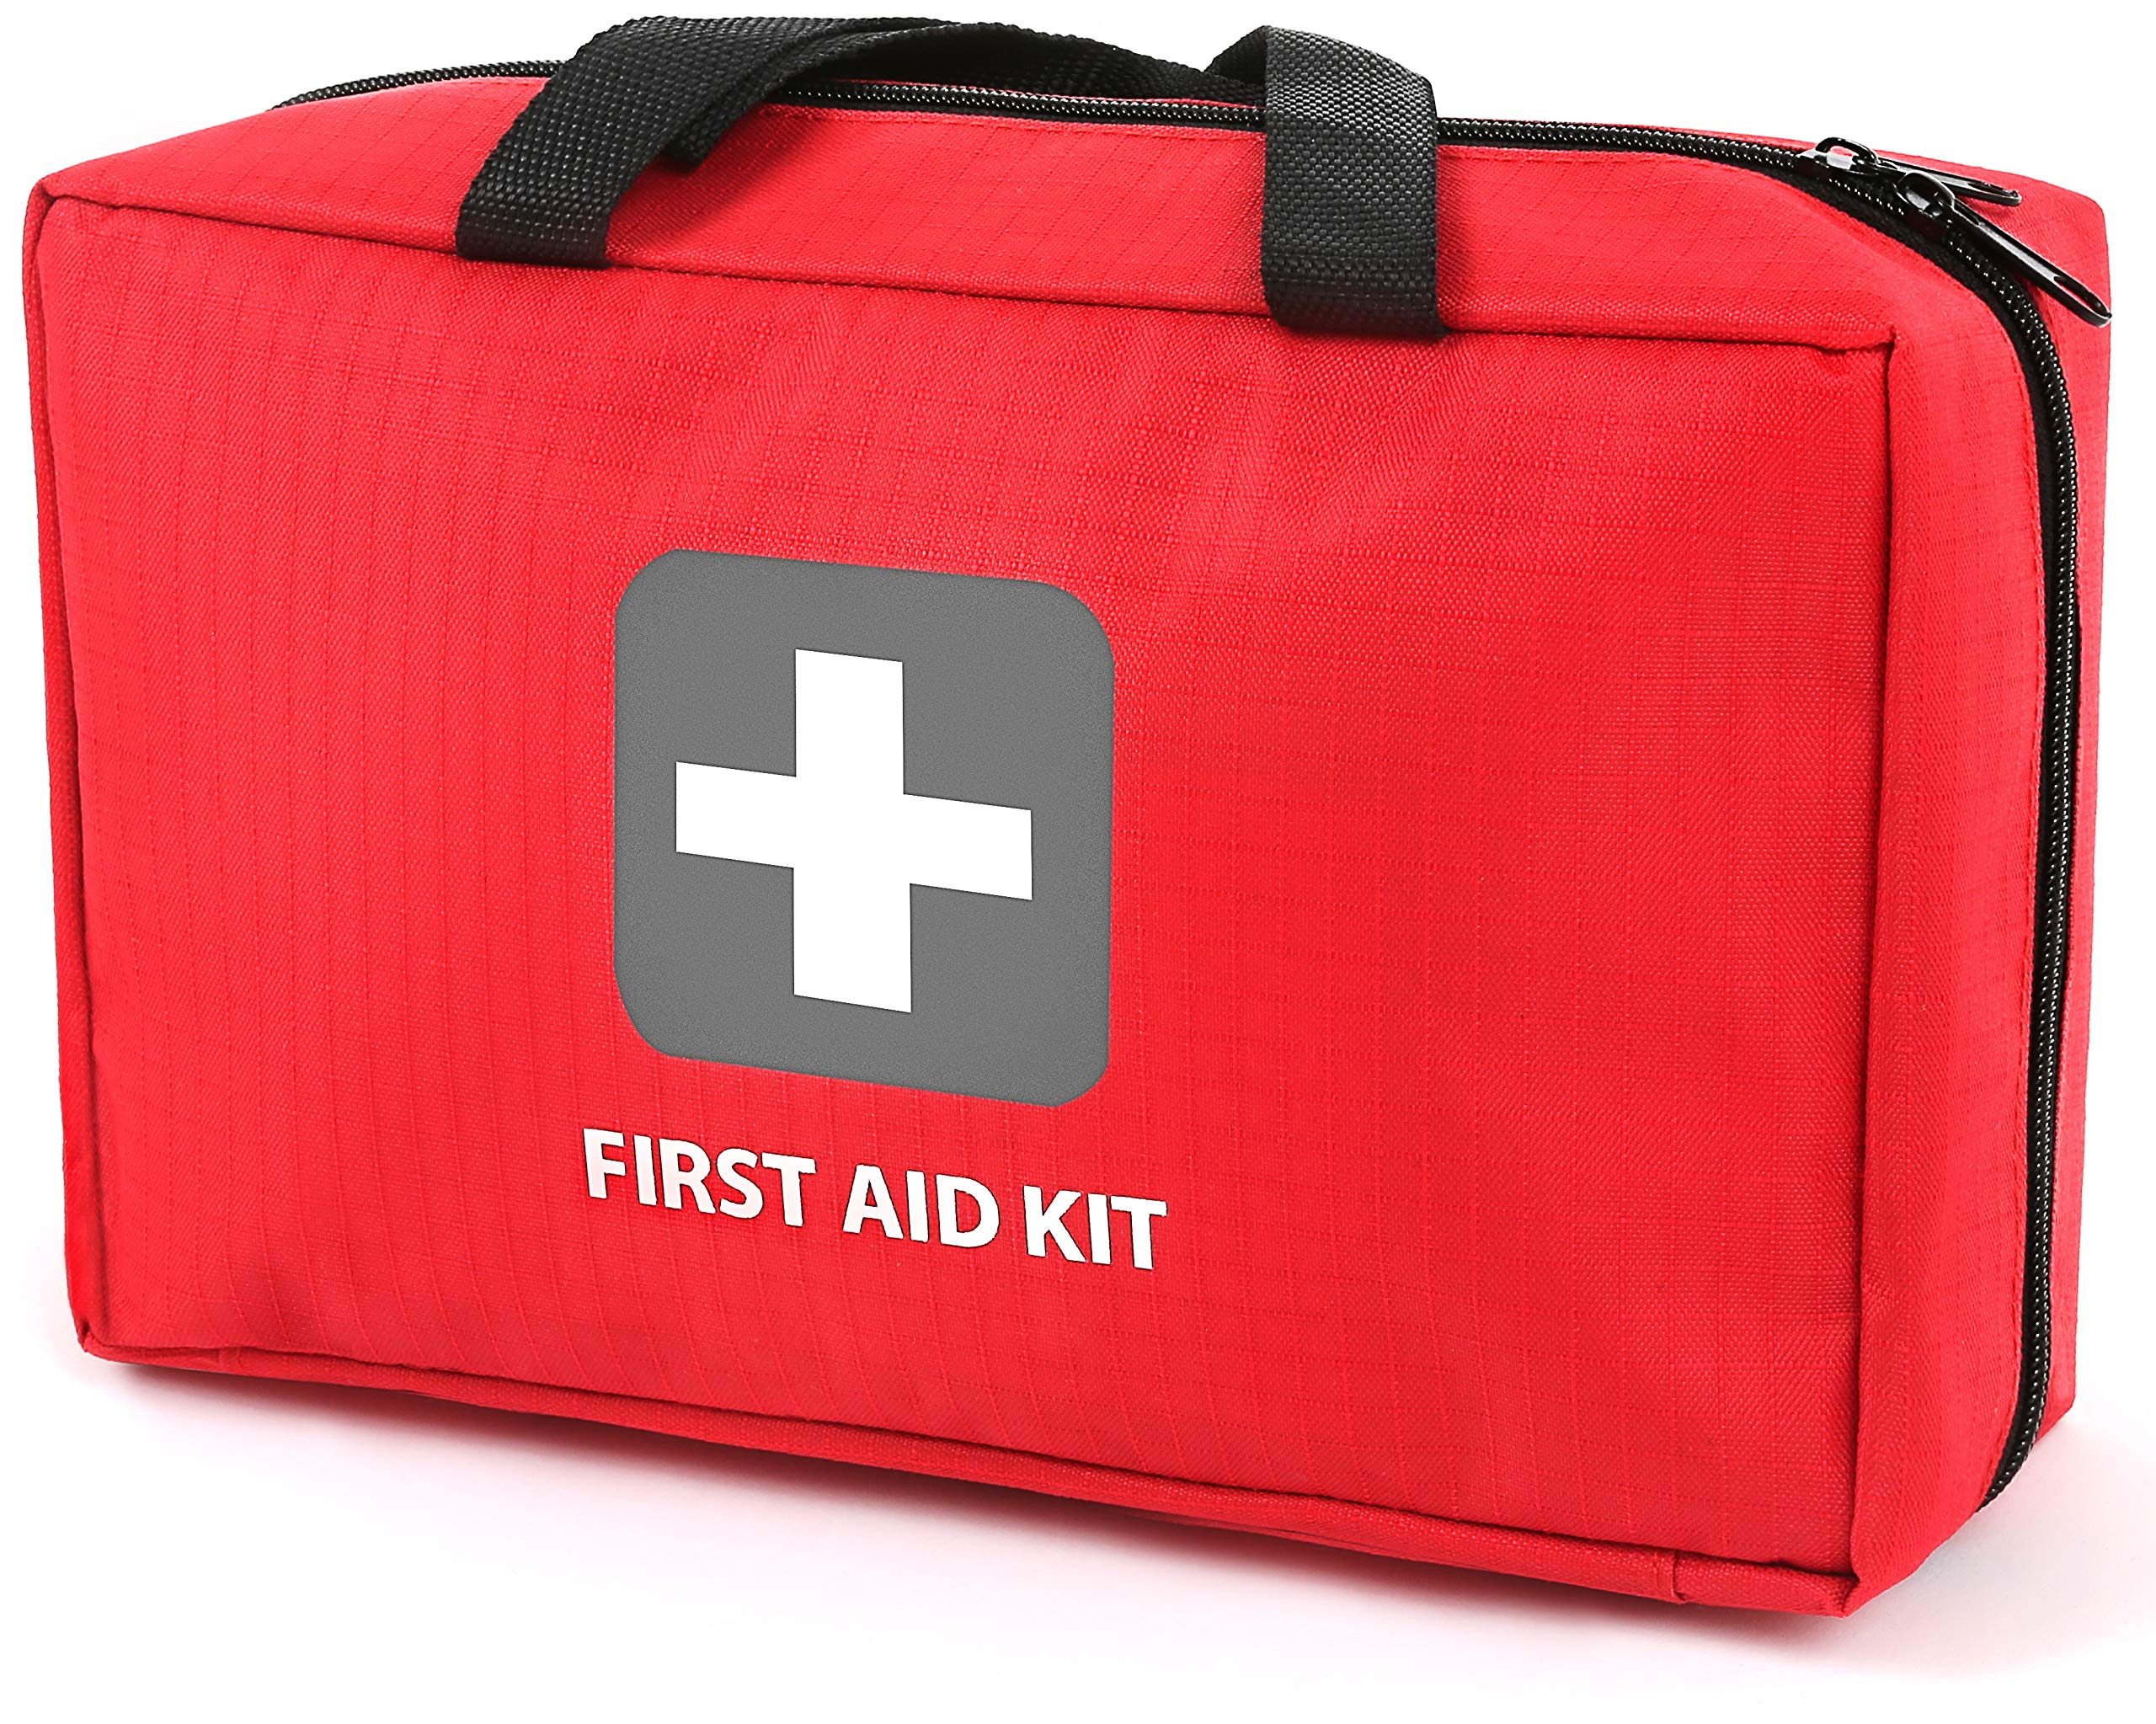 First Aid Kit – 291 Pieces of First Aid Supplies | Hospital Grade Medical Supplies for Emergency and Survival Situations | Ideal for Car, Trucks, Camping, Hiking, Travel, Office, Sports, Pets, Hunting, Home